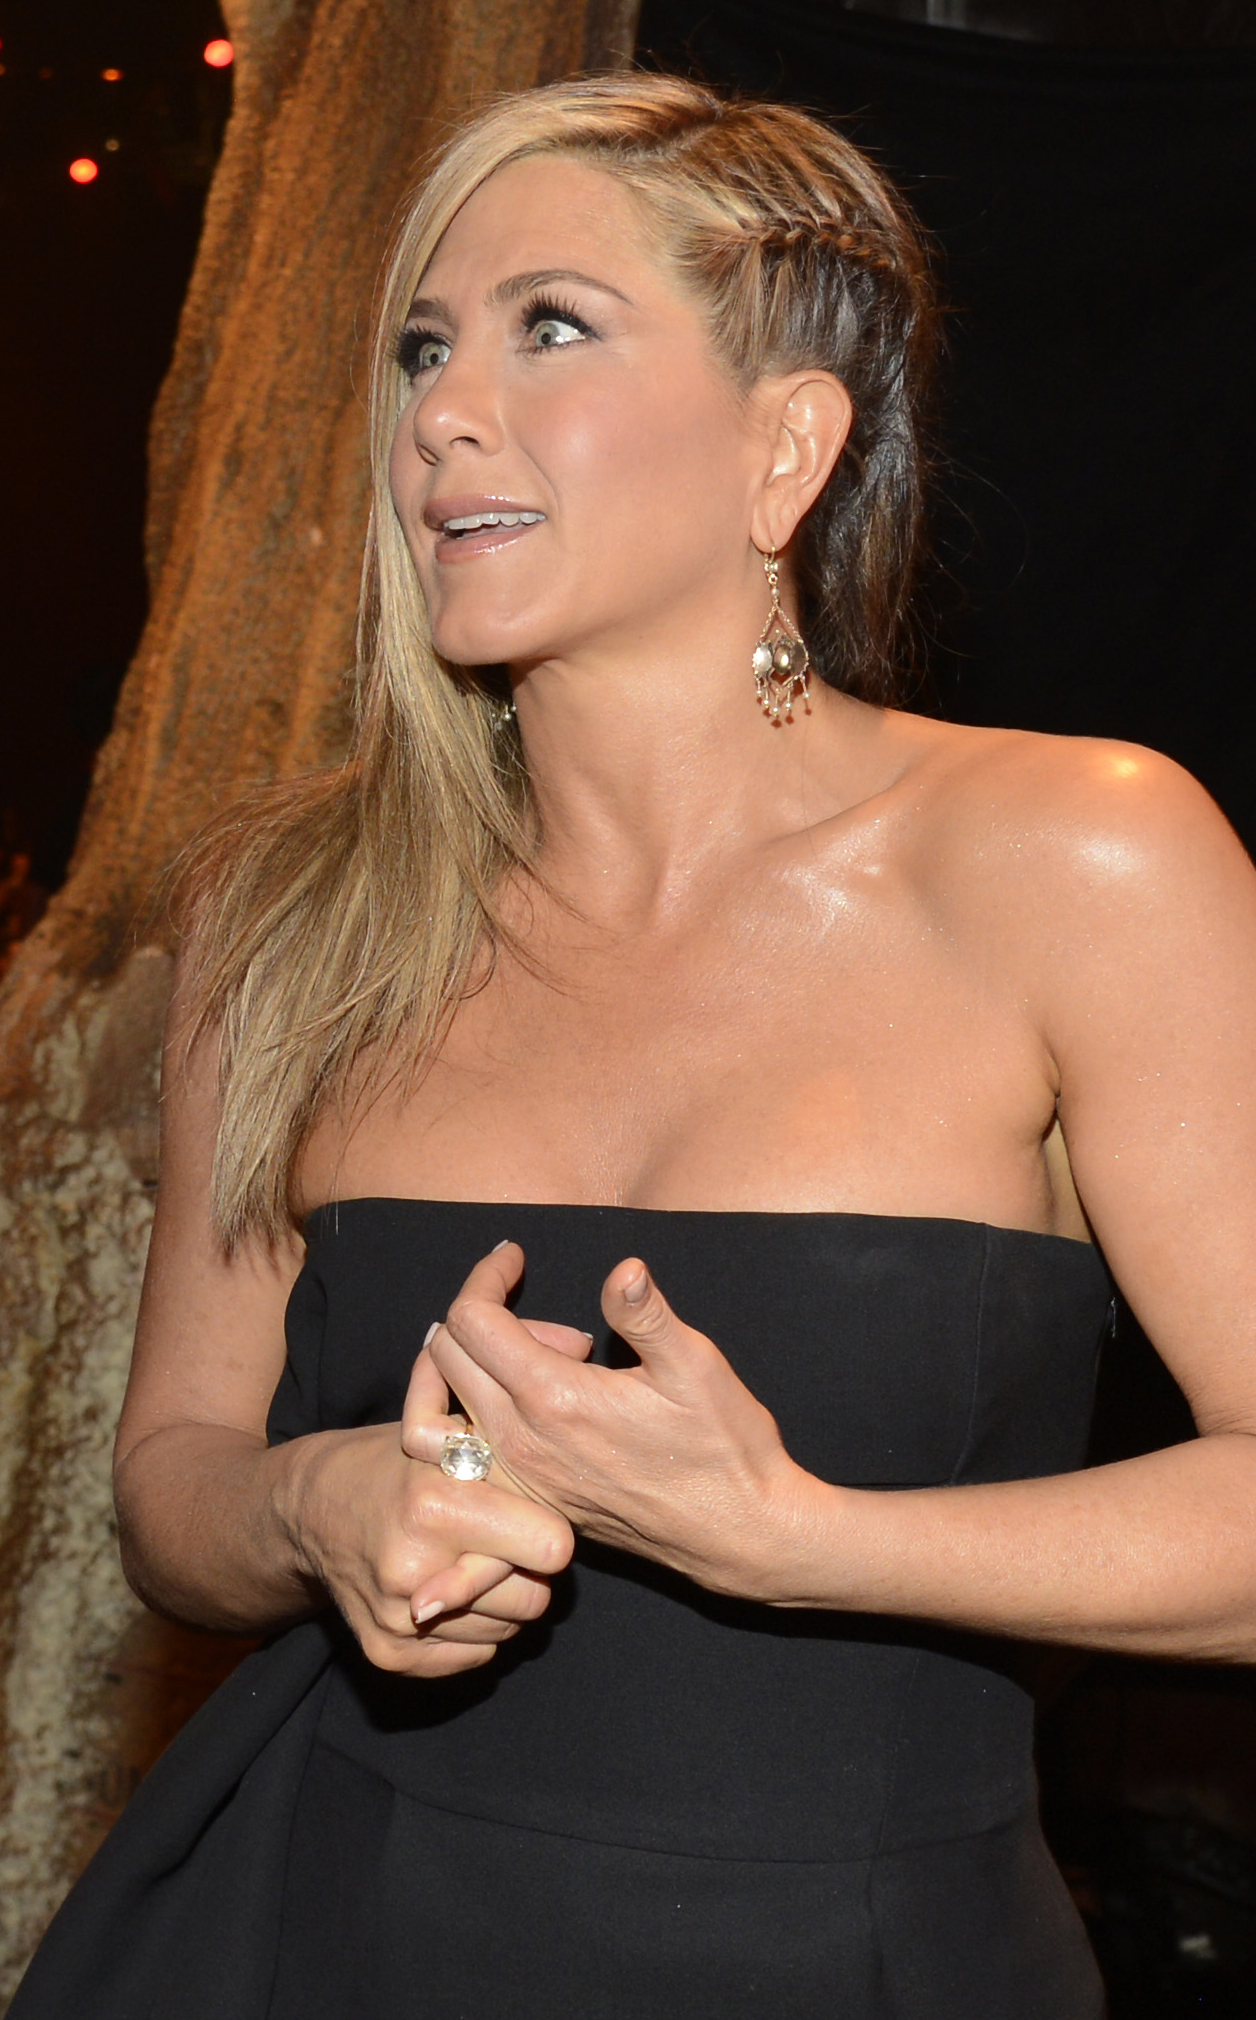 Usually reserved when it comes to her hair, Jennifer Aniston took her look to a new level with a chic braided undercut.